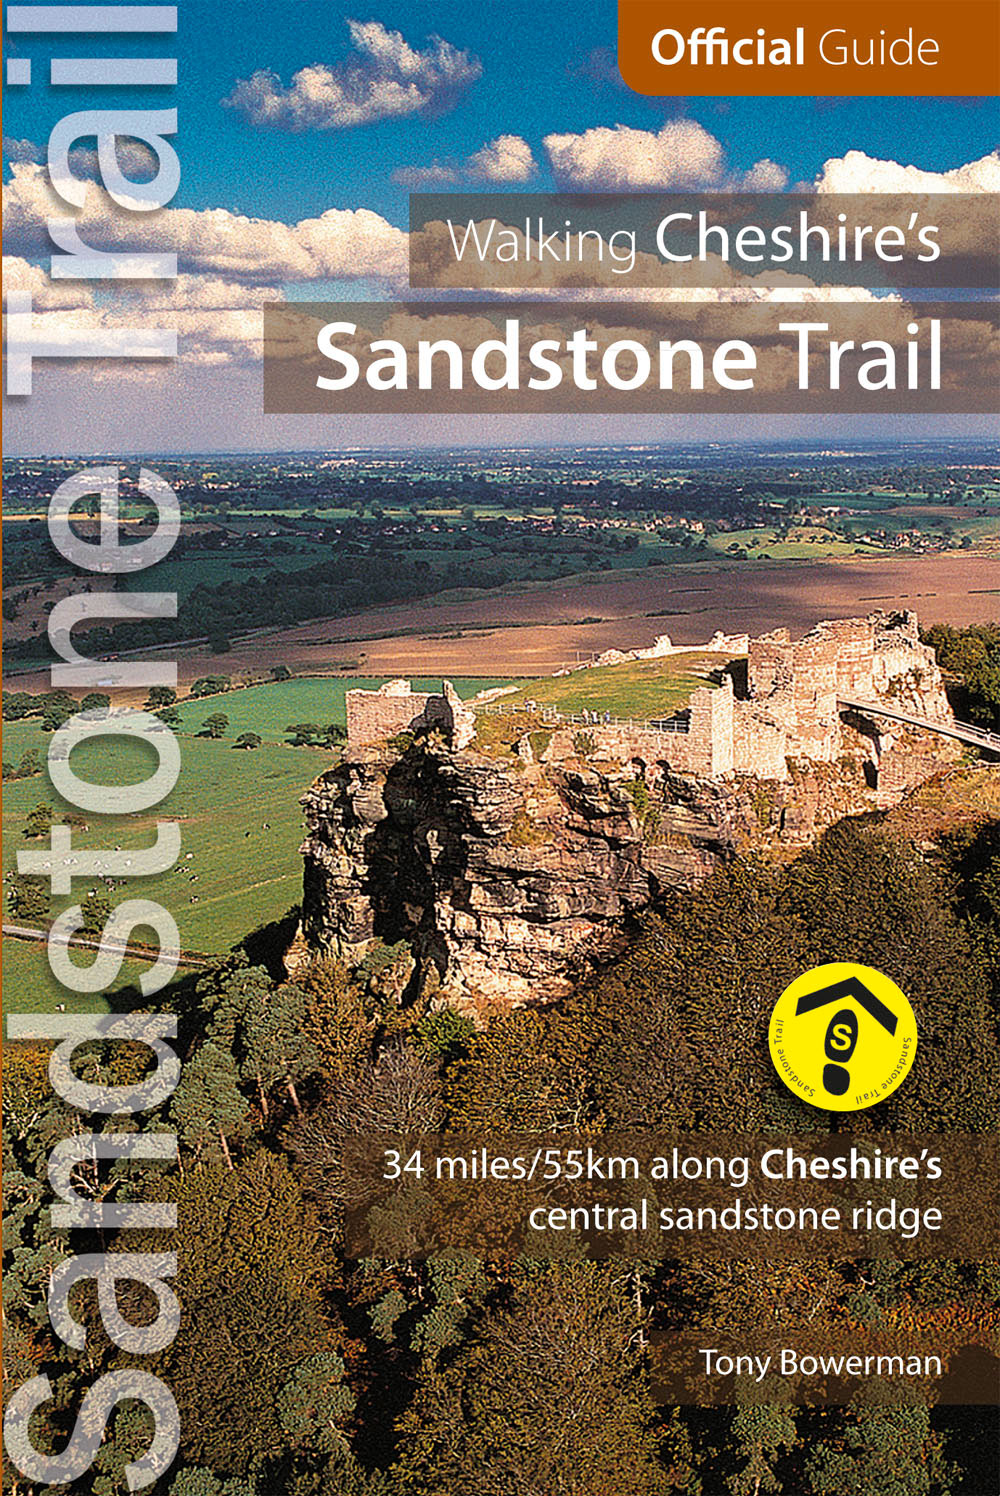 Walking Cheshire's Sandstone Trail - Official Guide